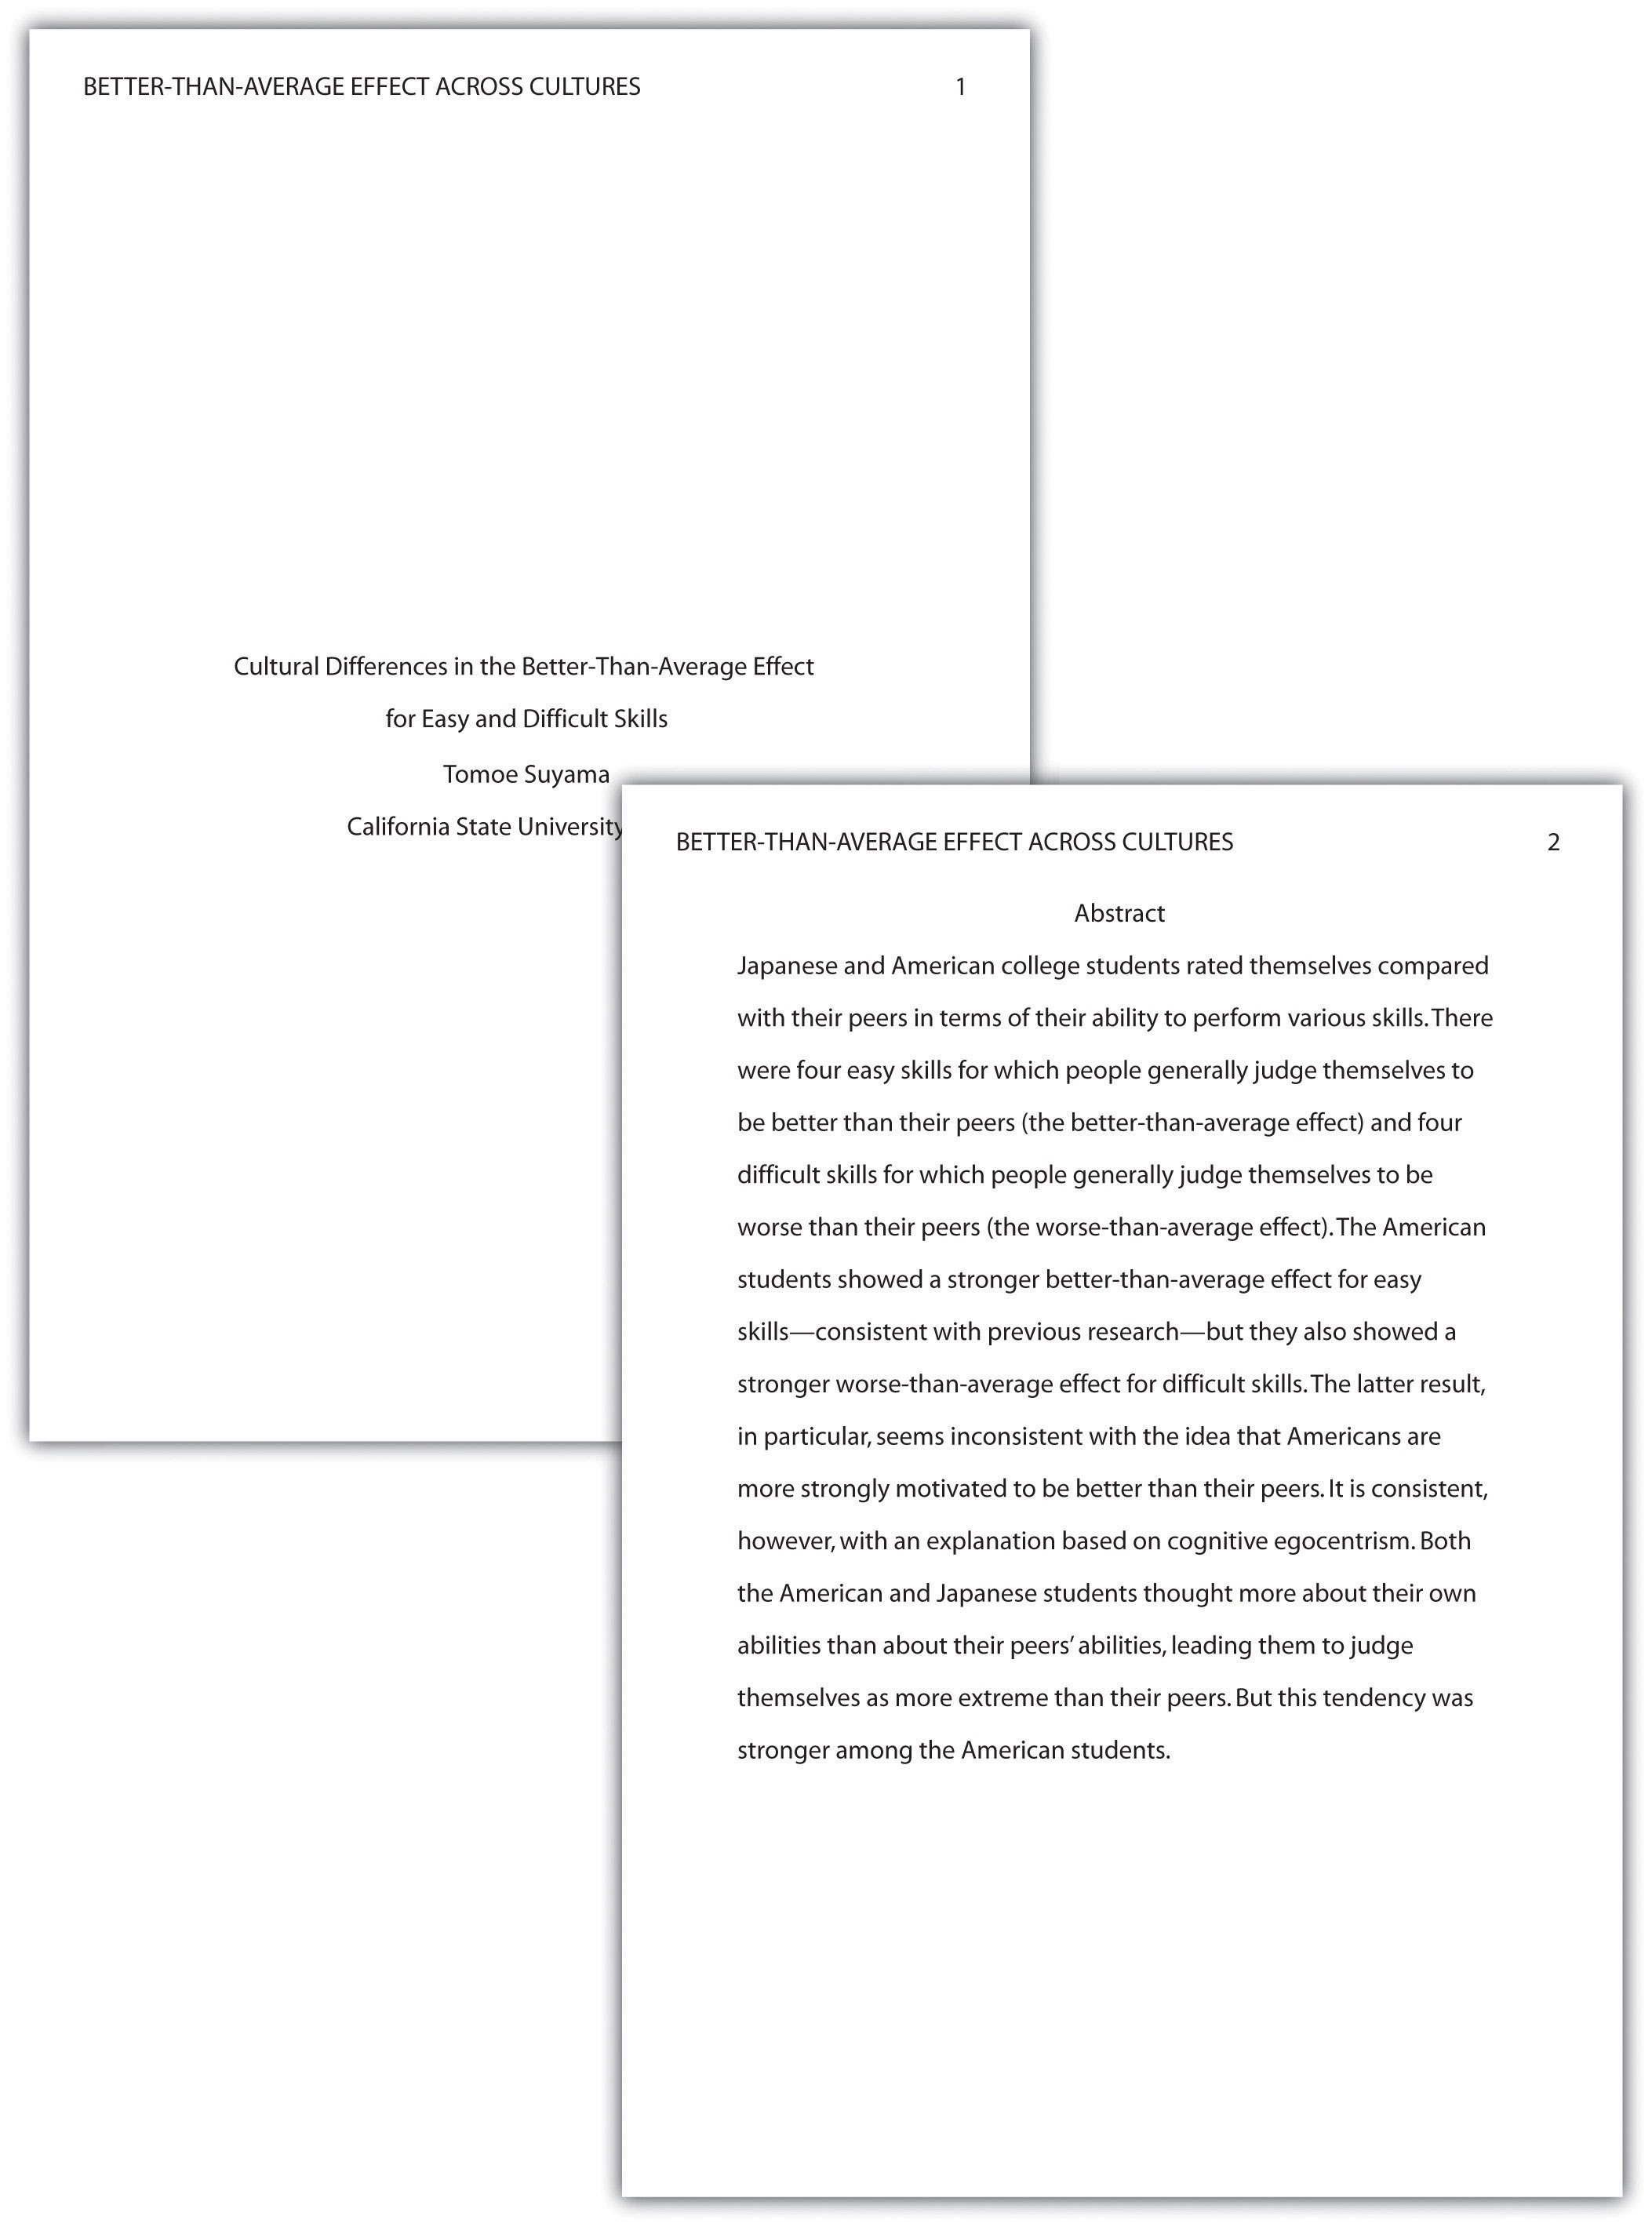 picture book analysis essay sample literary analysis essay mla ...